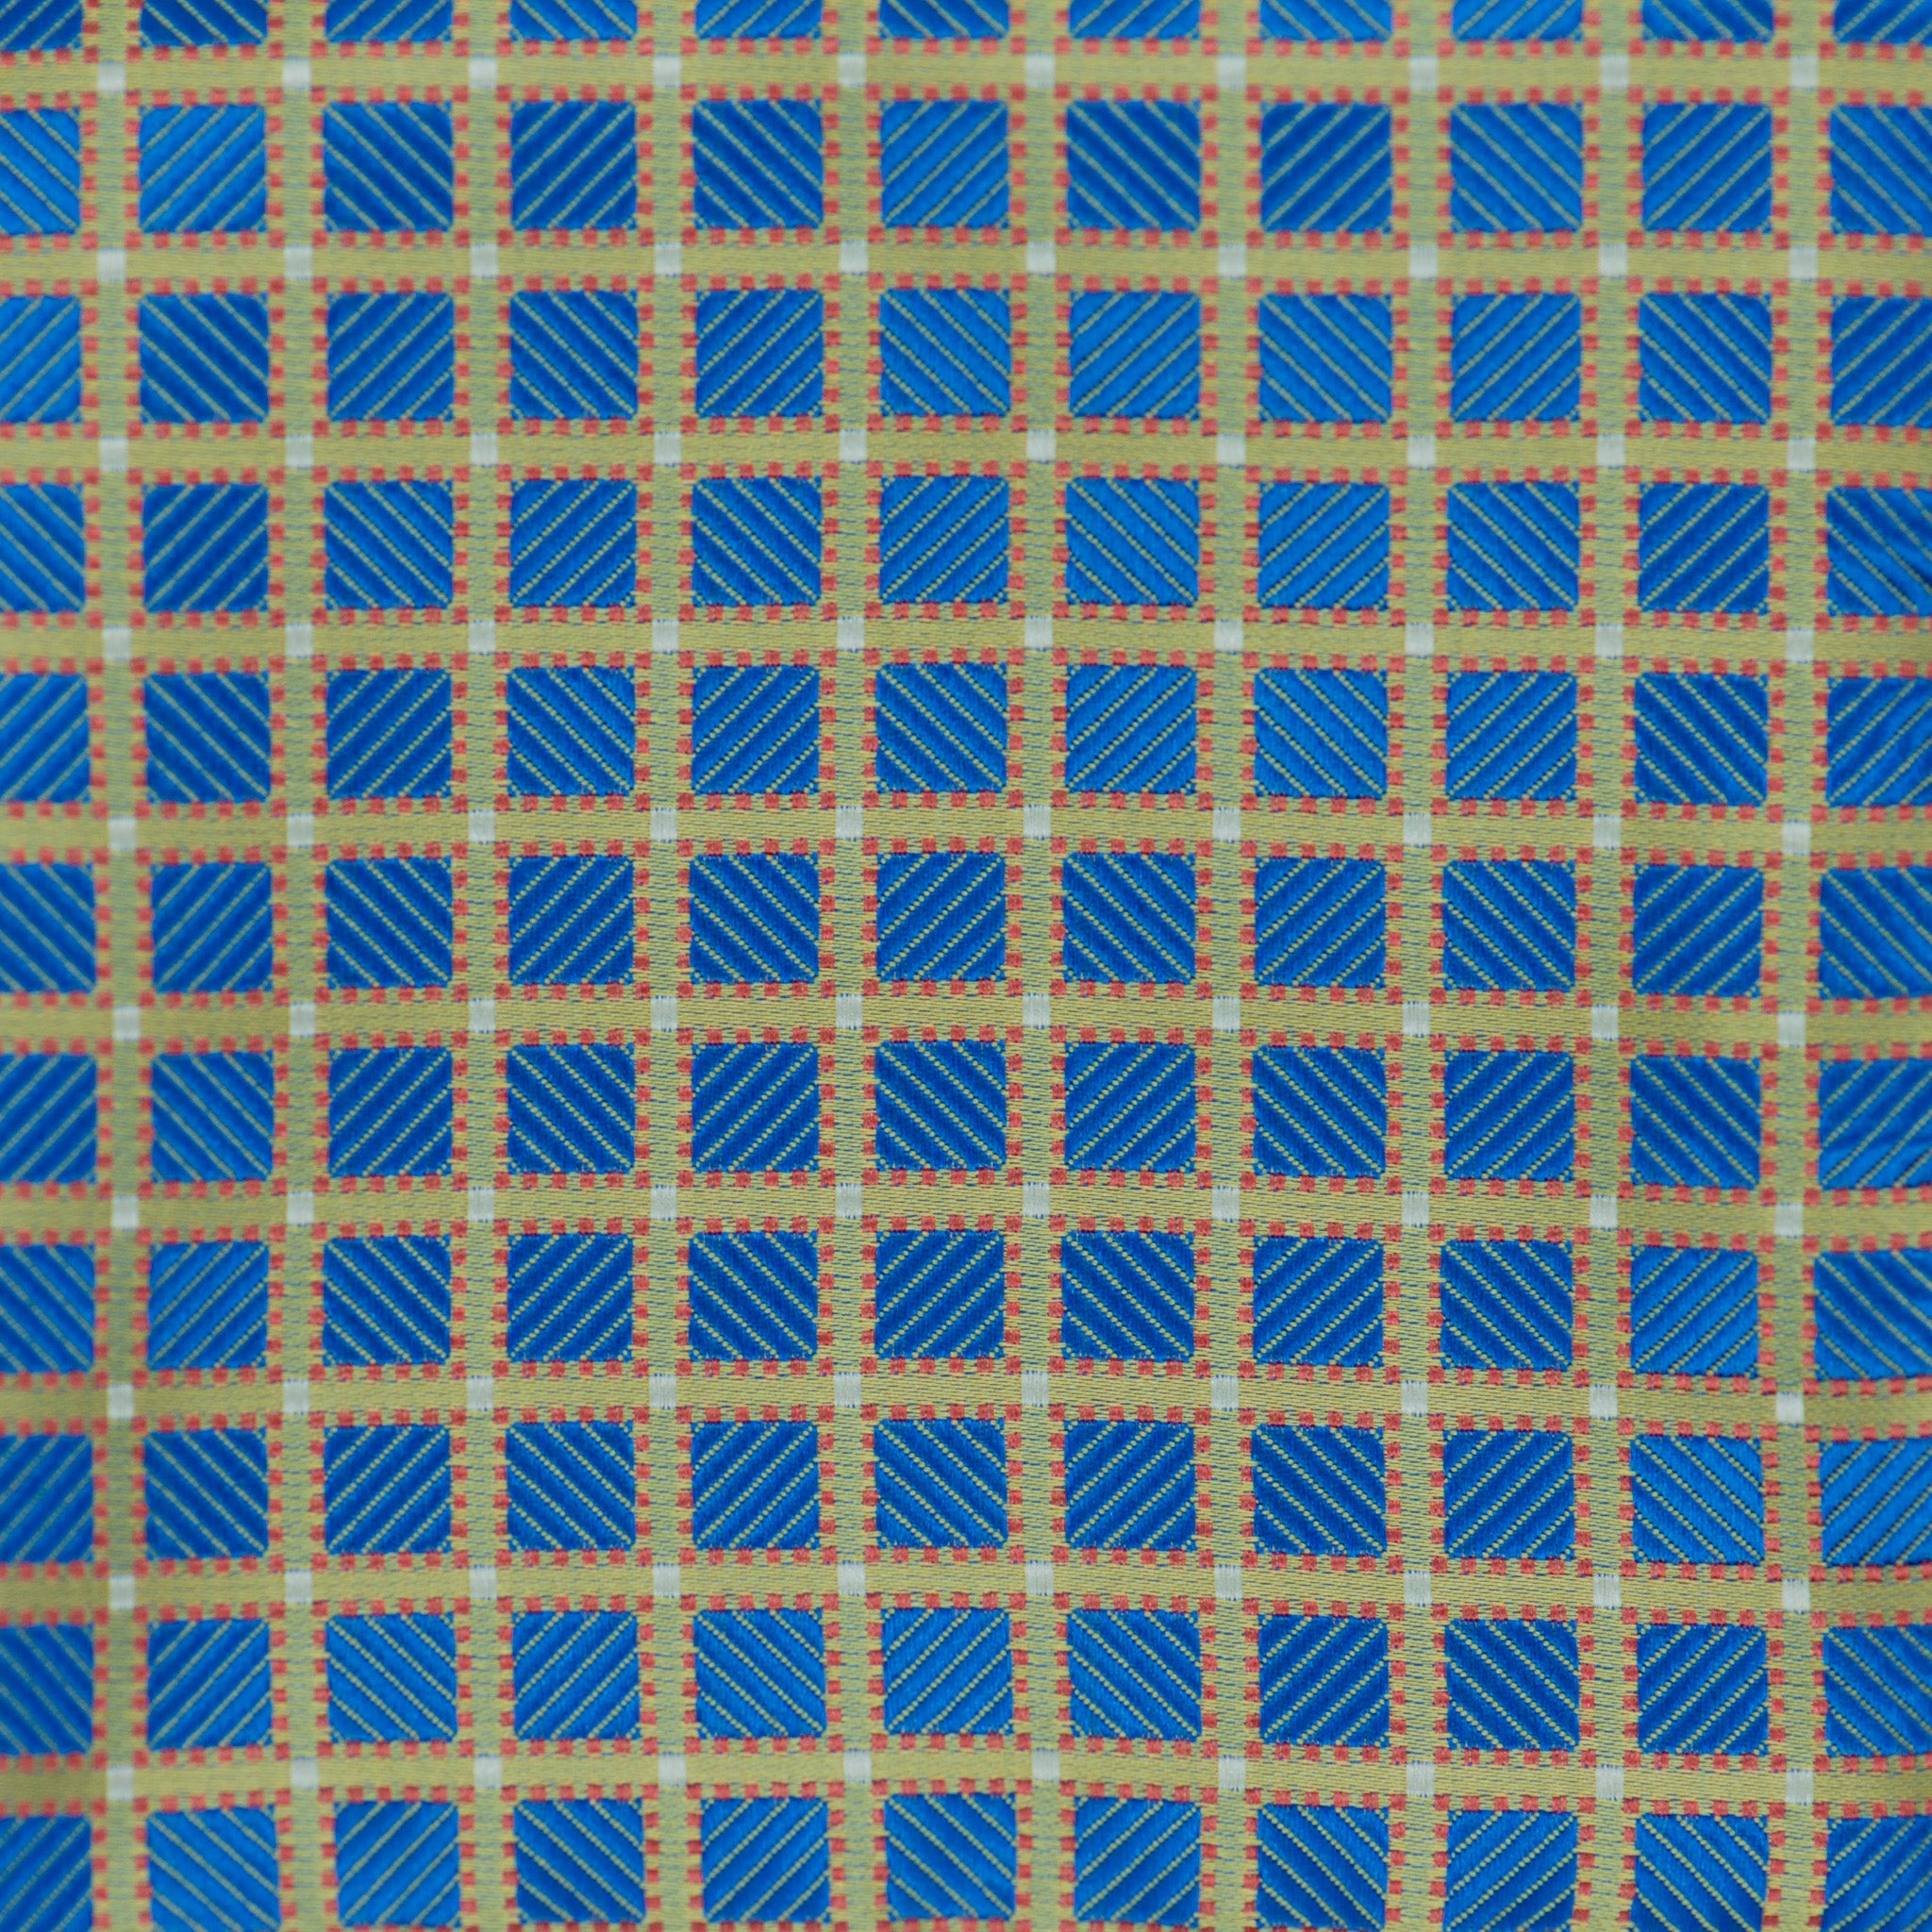 Silk Pocket Square - Gold hatch pattern, metallic self stripe blue squares blue, red dot stitch, tiny white squares